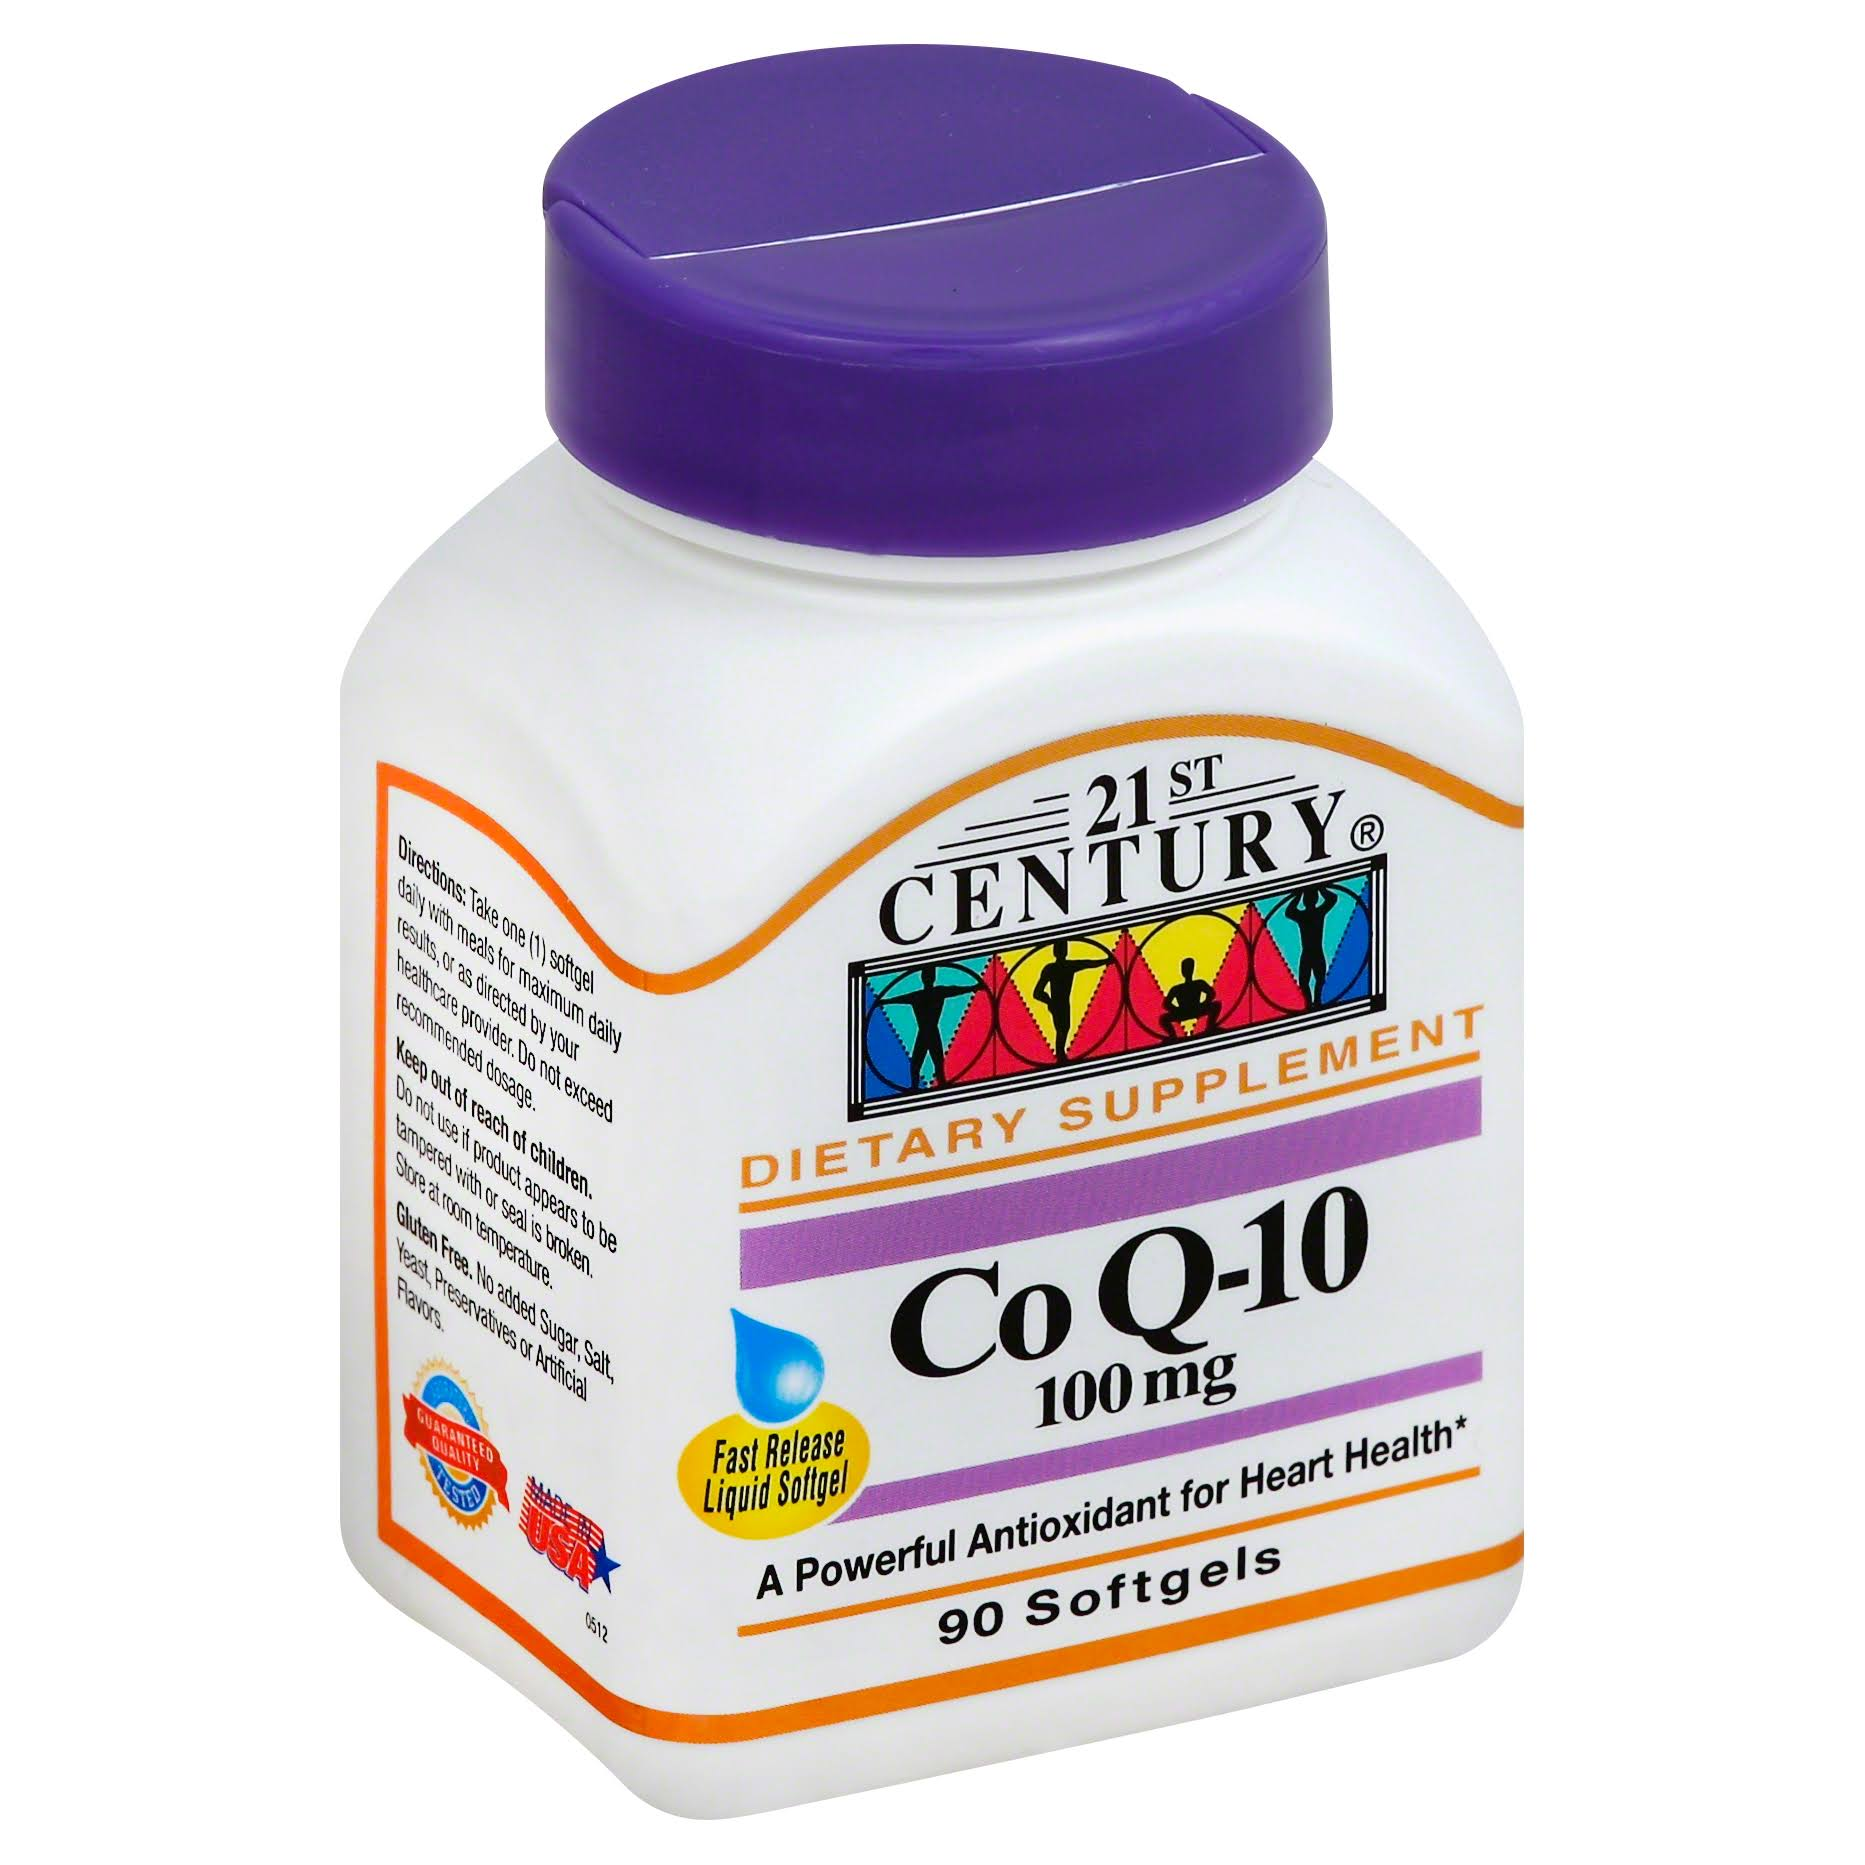 21st Century COQ-10 Softgels - 100mg, 90 Count